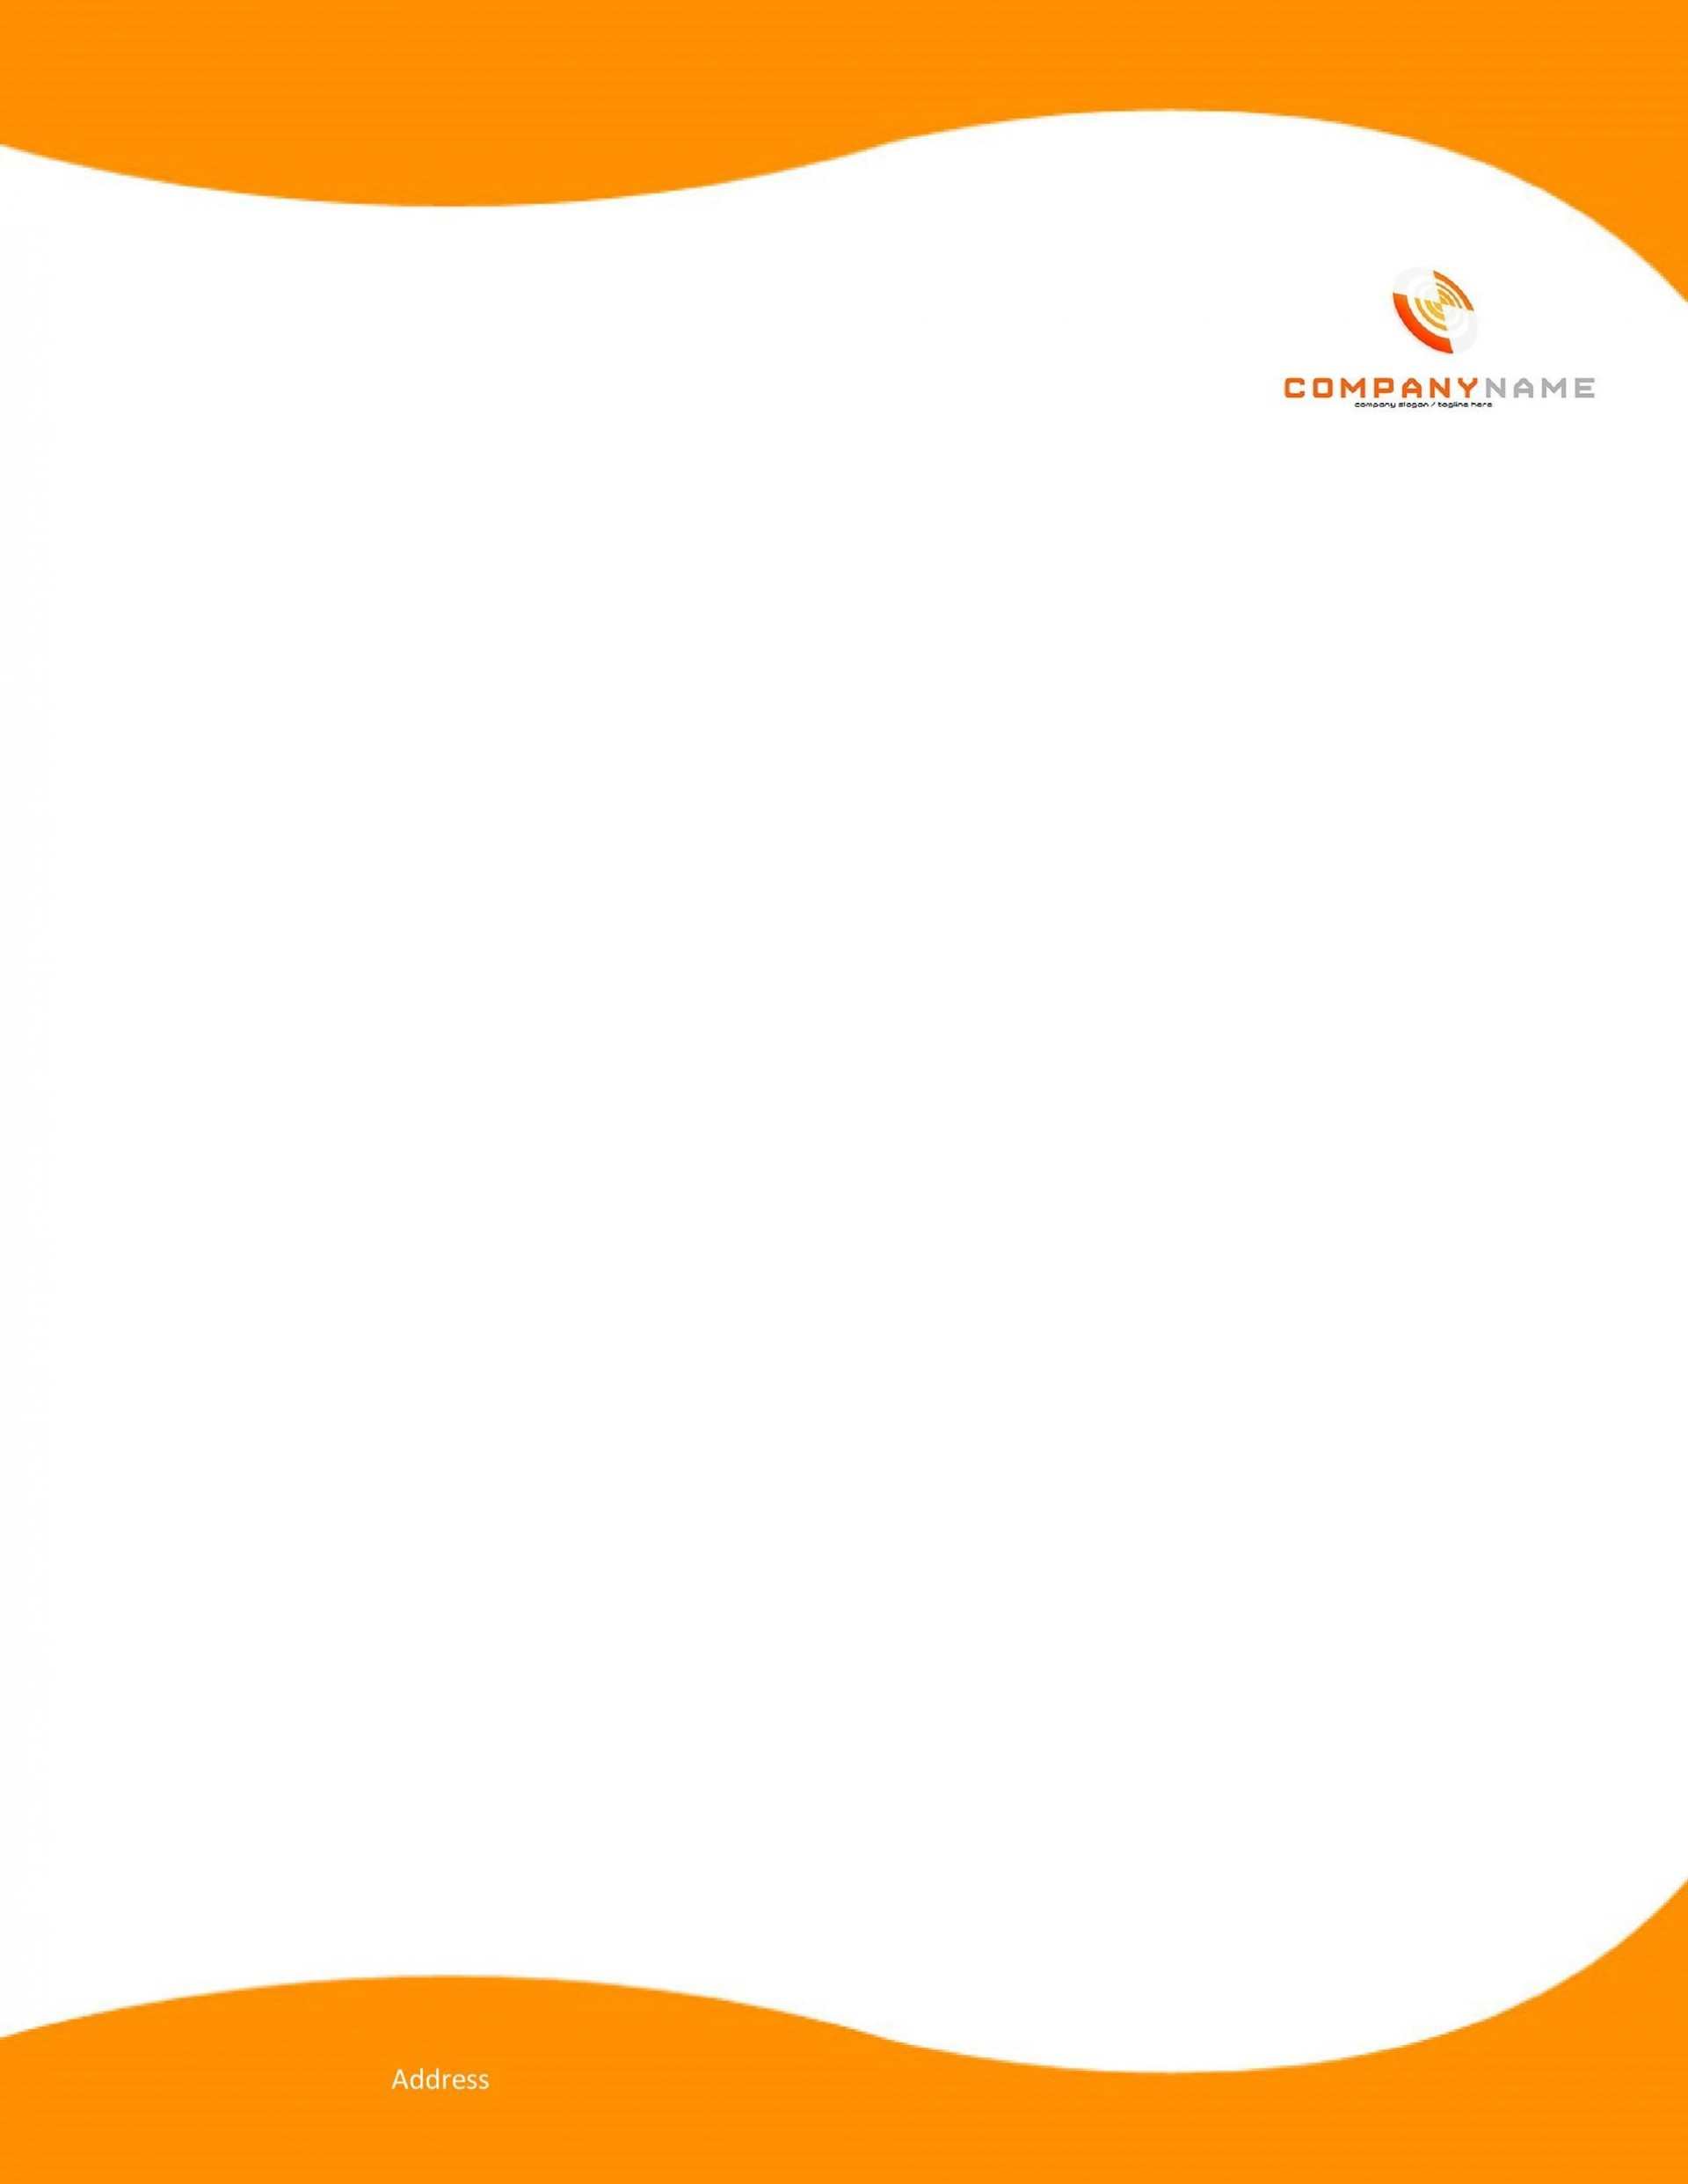 005 Unusual Letterhead Format In Word 2007 Free Download Highest Quality  Company Template1920